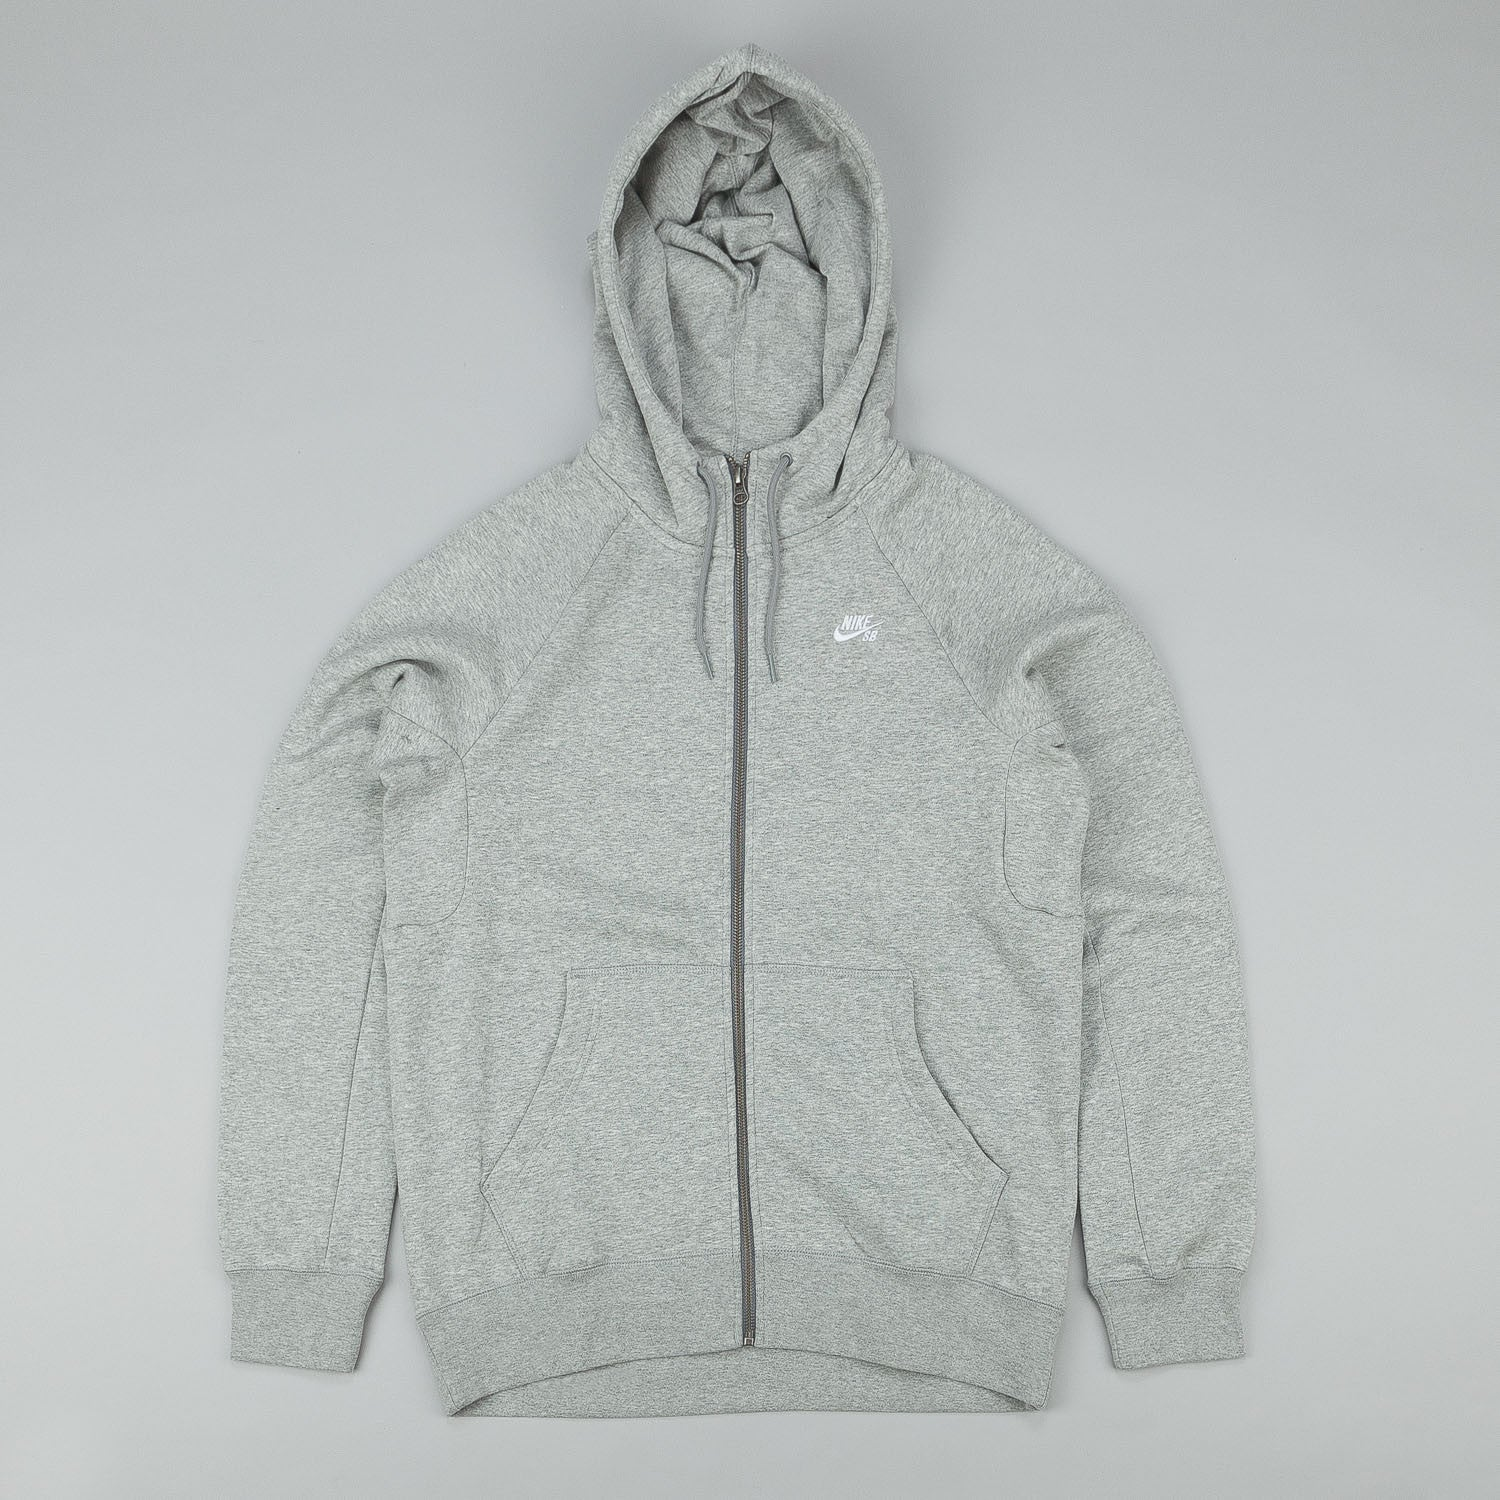 NIke SB Icon Zipped Hooded Sweatshirt